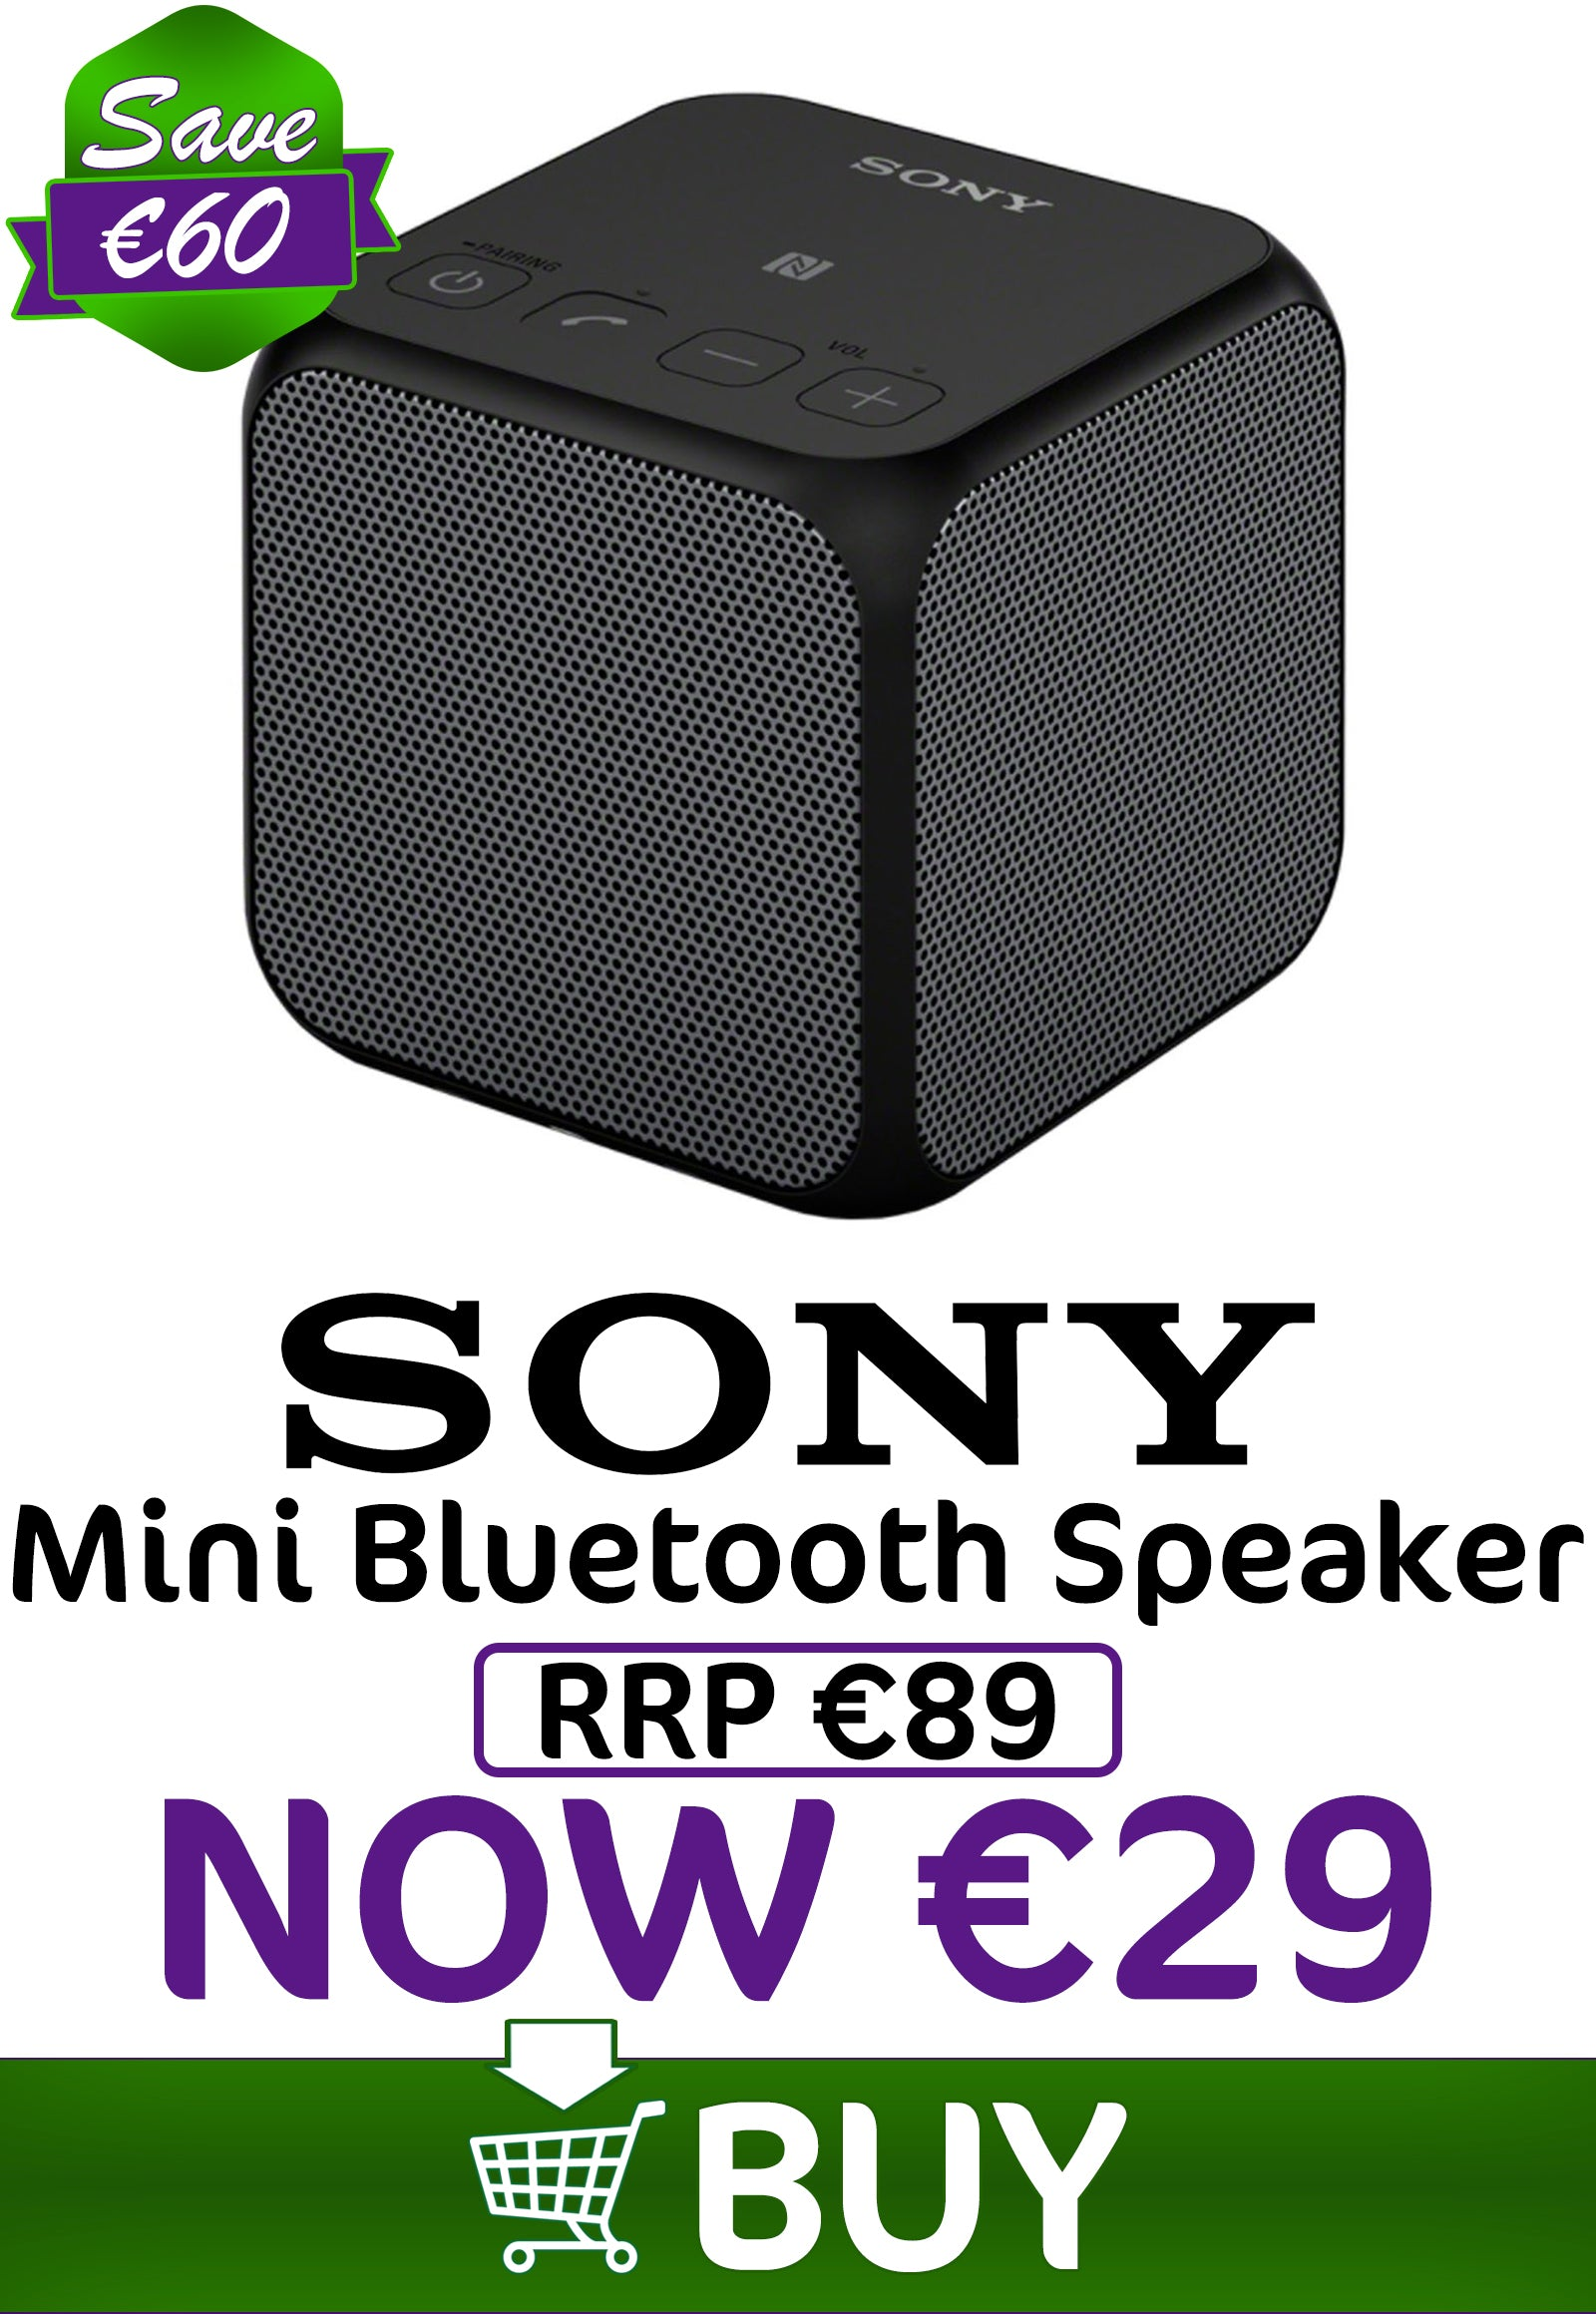 Sony Mini Bluetooth Speaker - €39